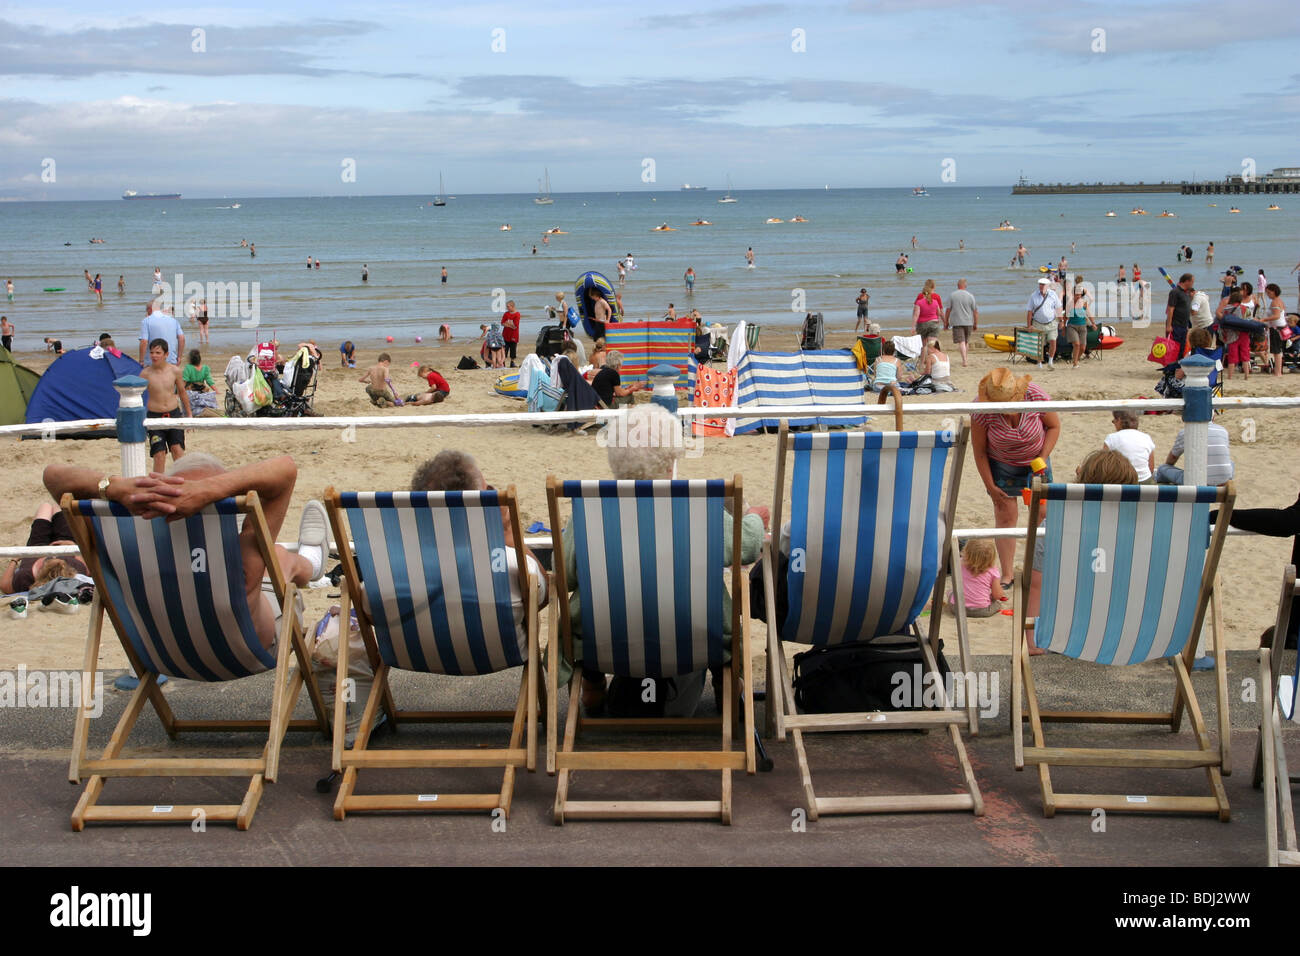 Deckchairs For Hire Stock Photos Amp Deckchairs For Hire